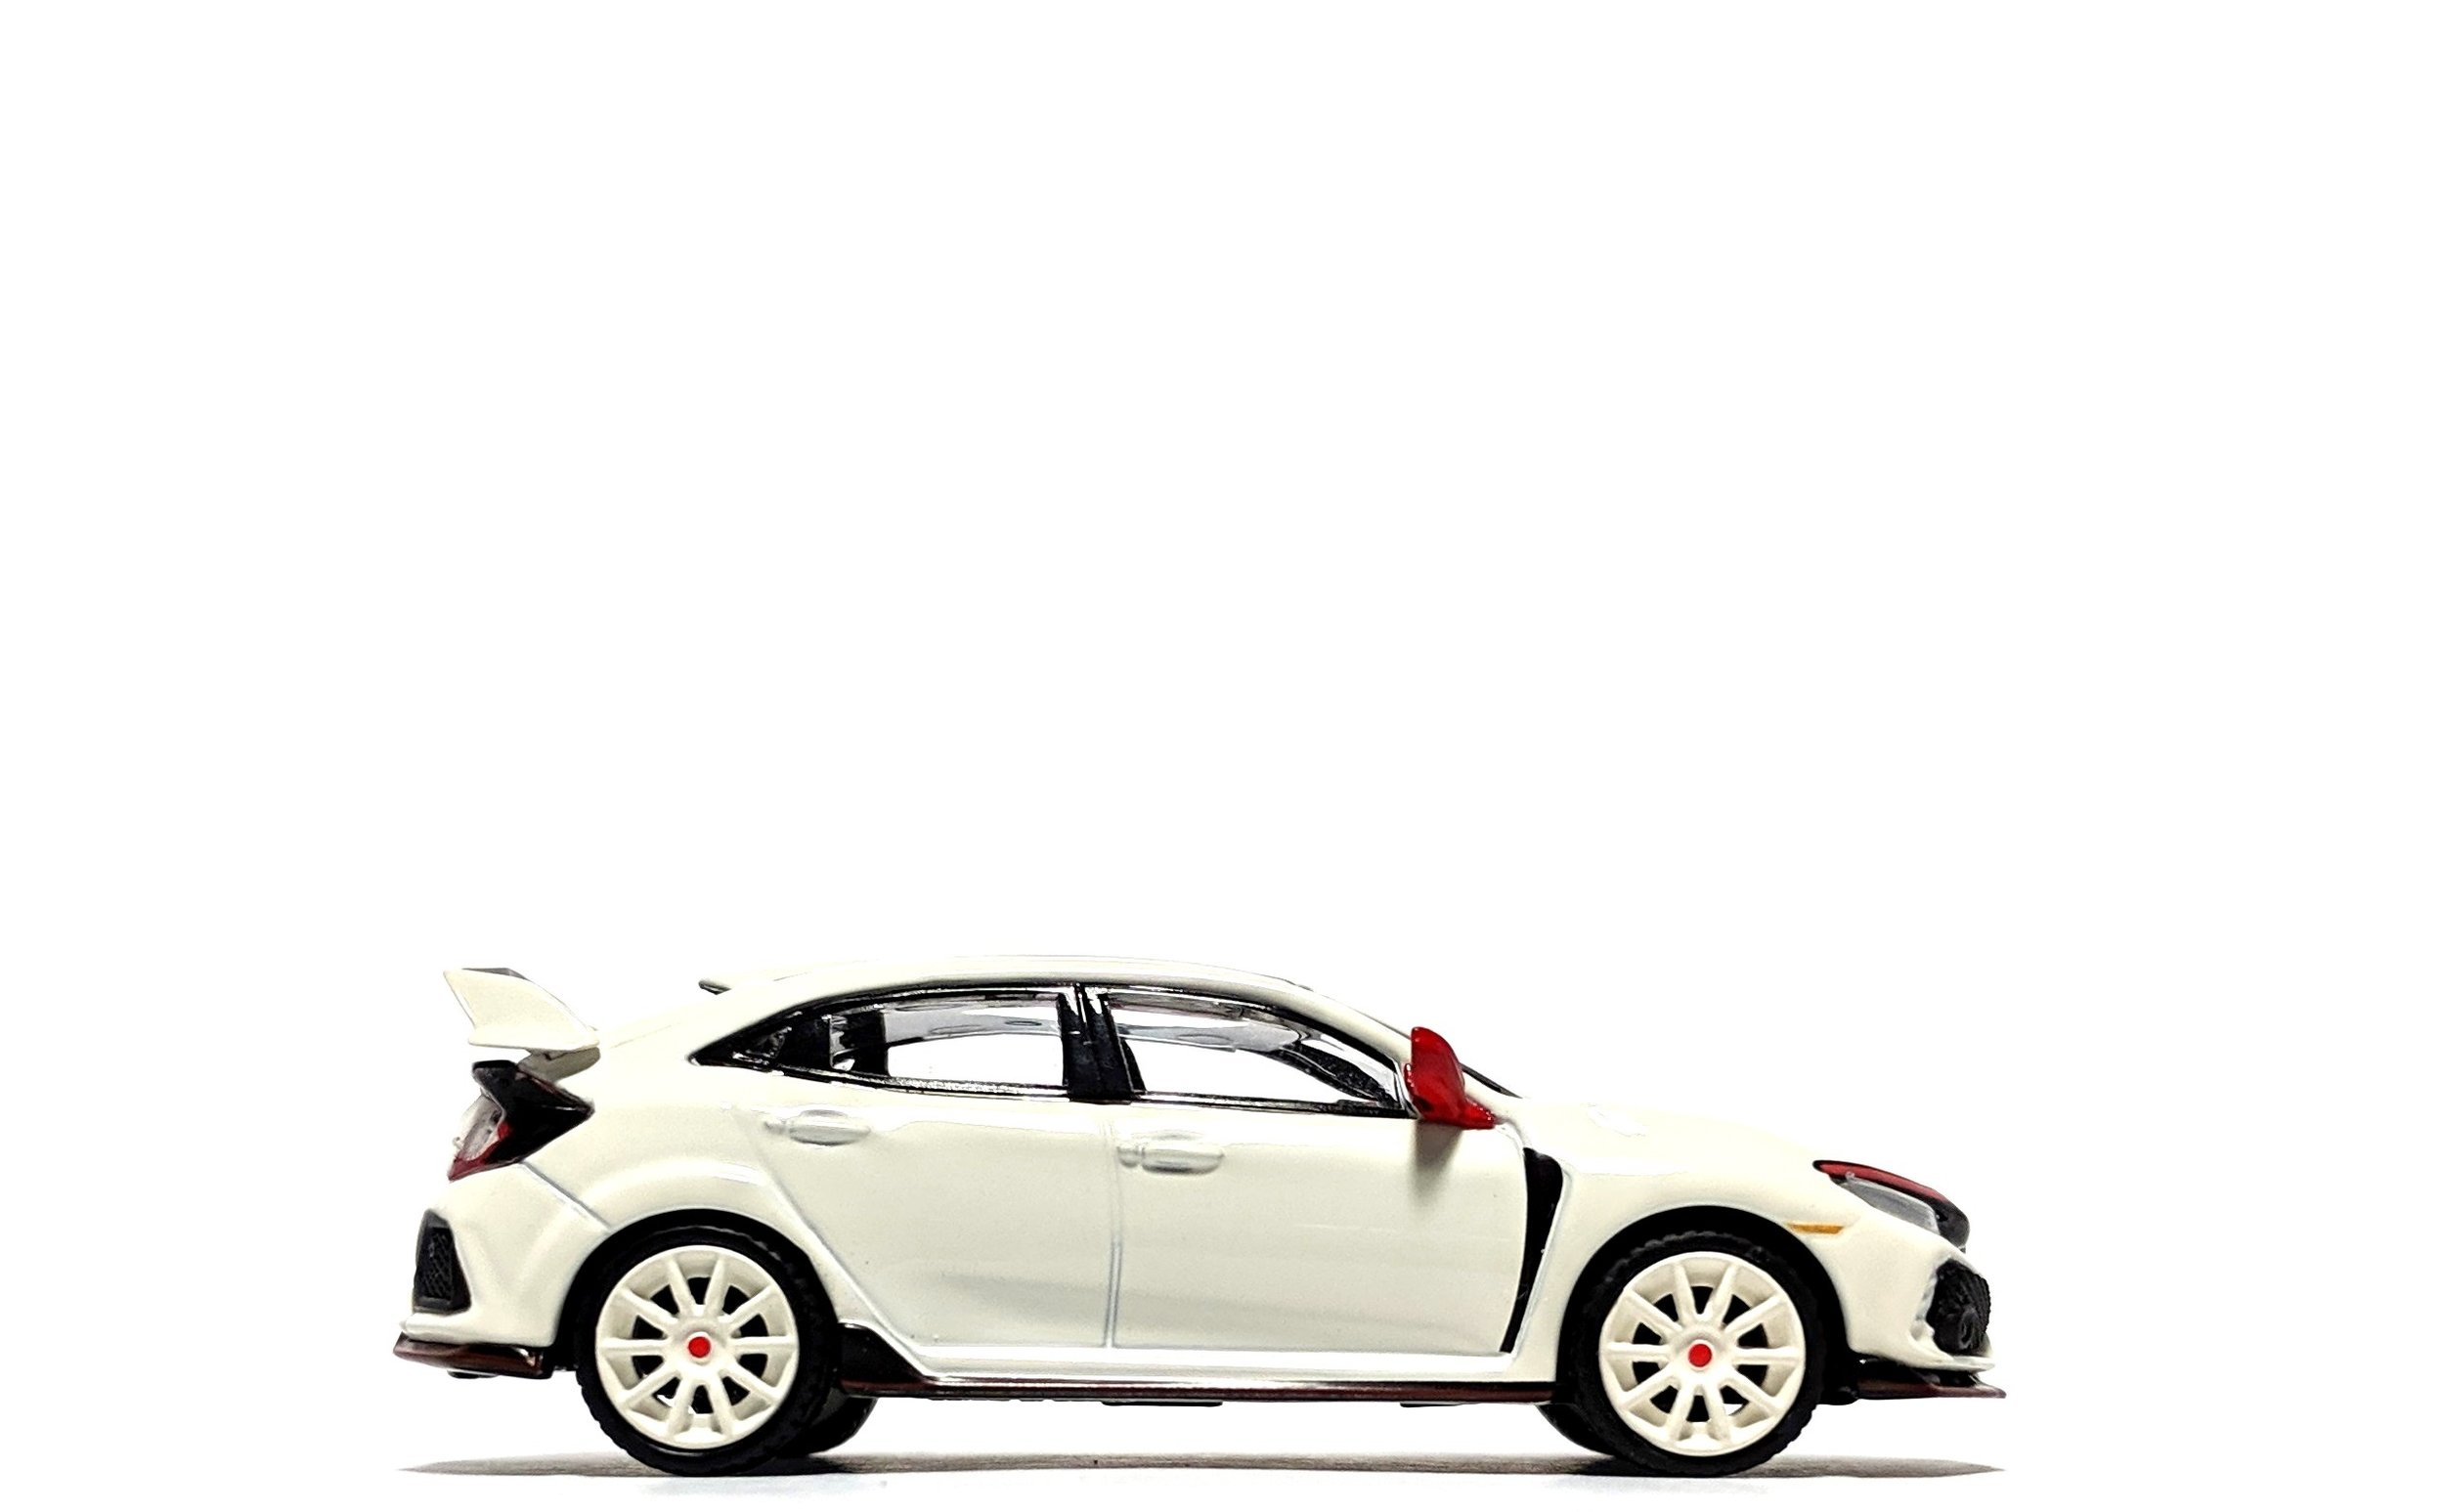 Honda Civic Type R (FK8) Modulo Edition Championship White - TSM/Mini GT